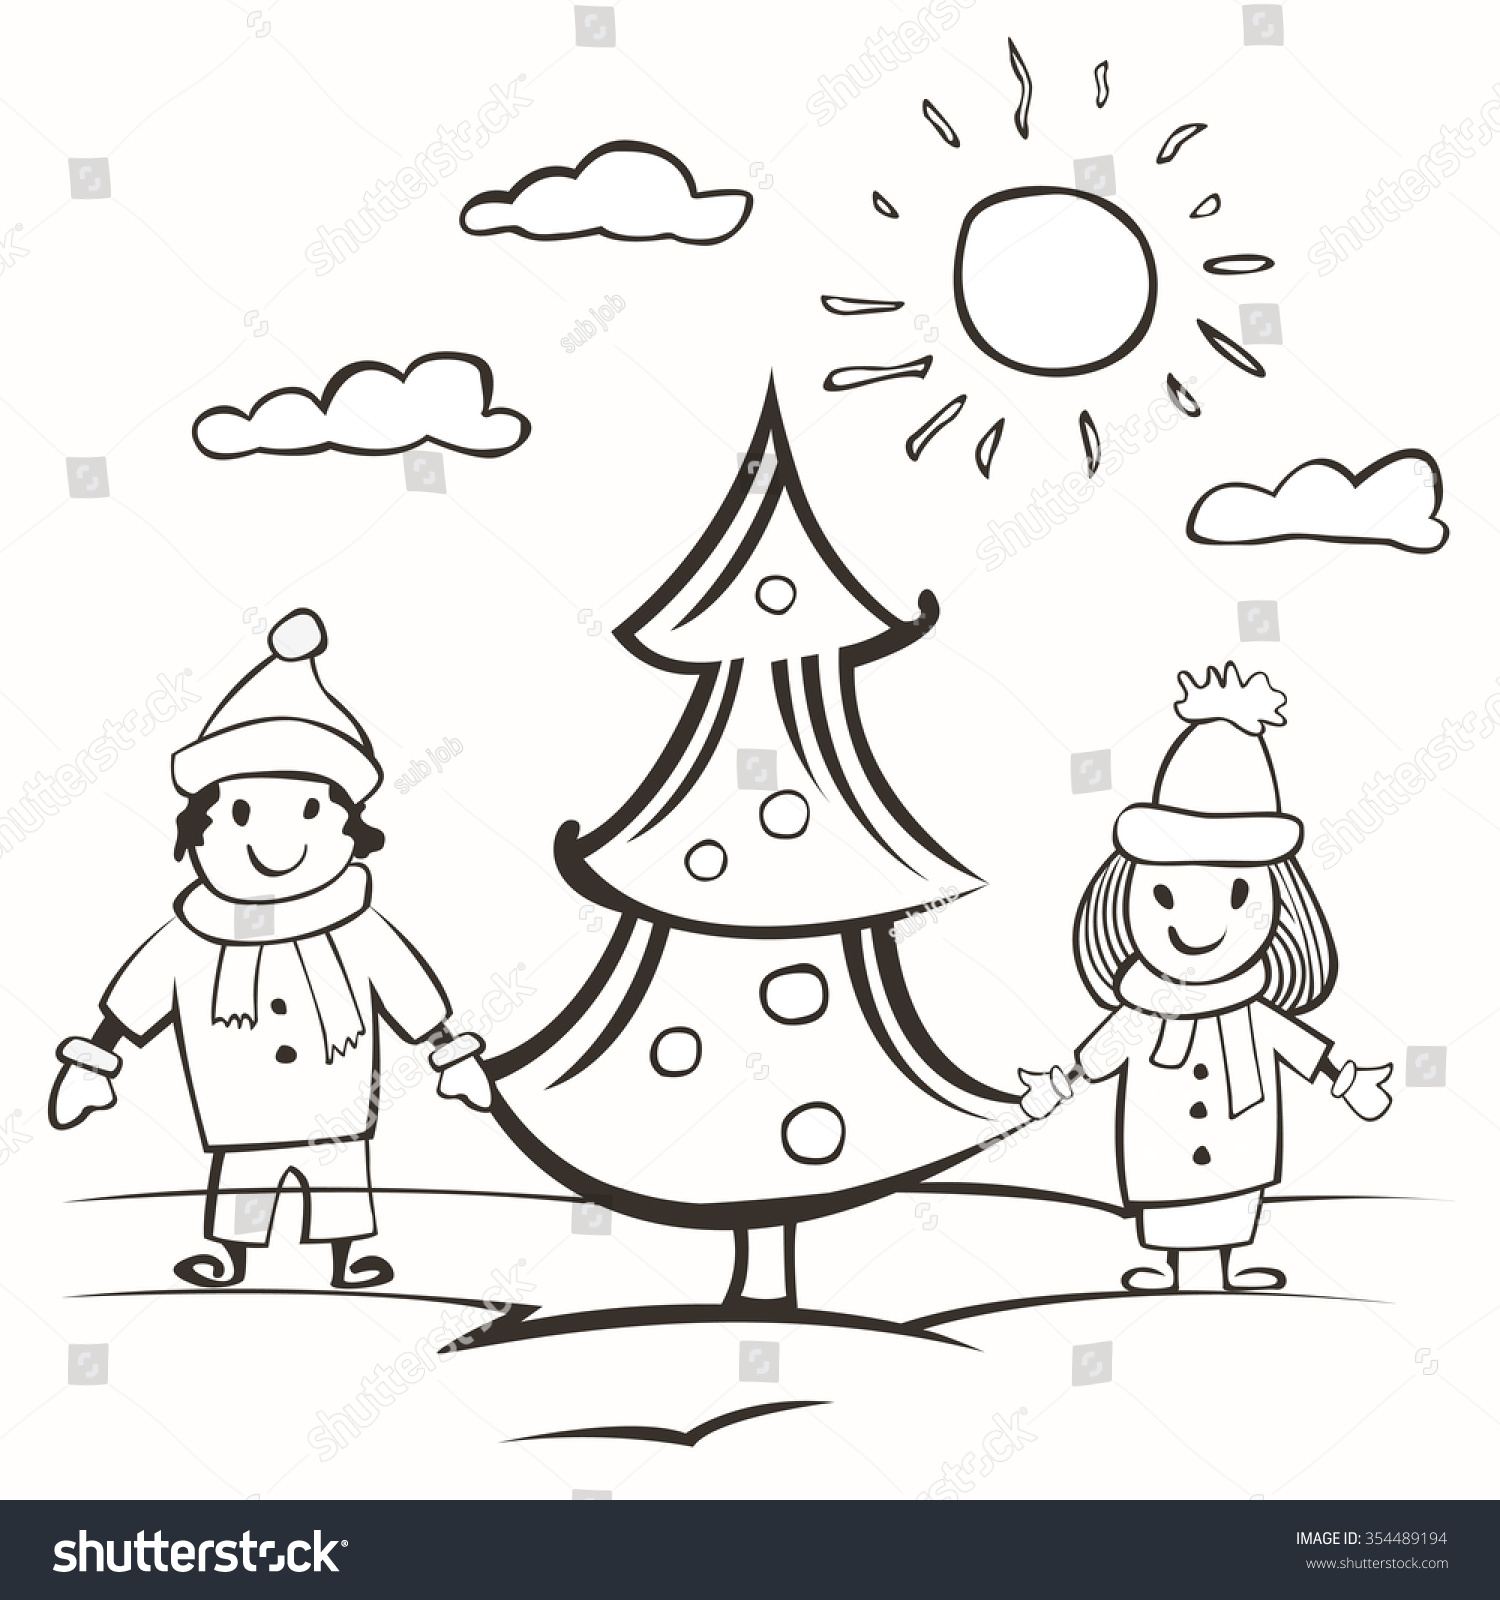 Doodle Small Child Drawing Card Children Stock Vector